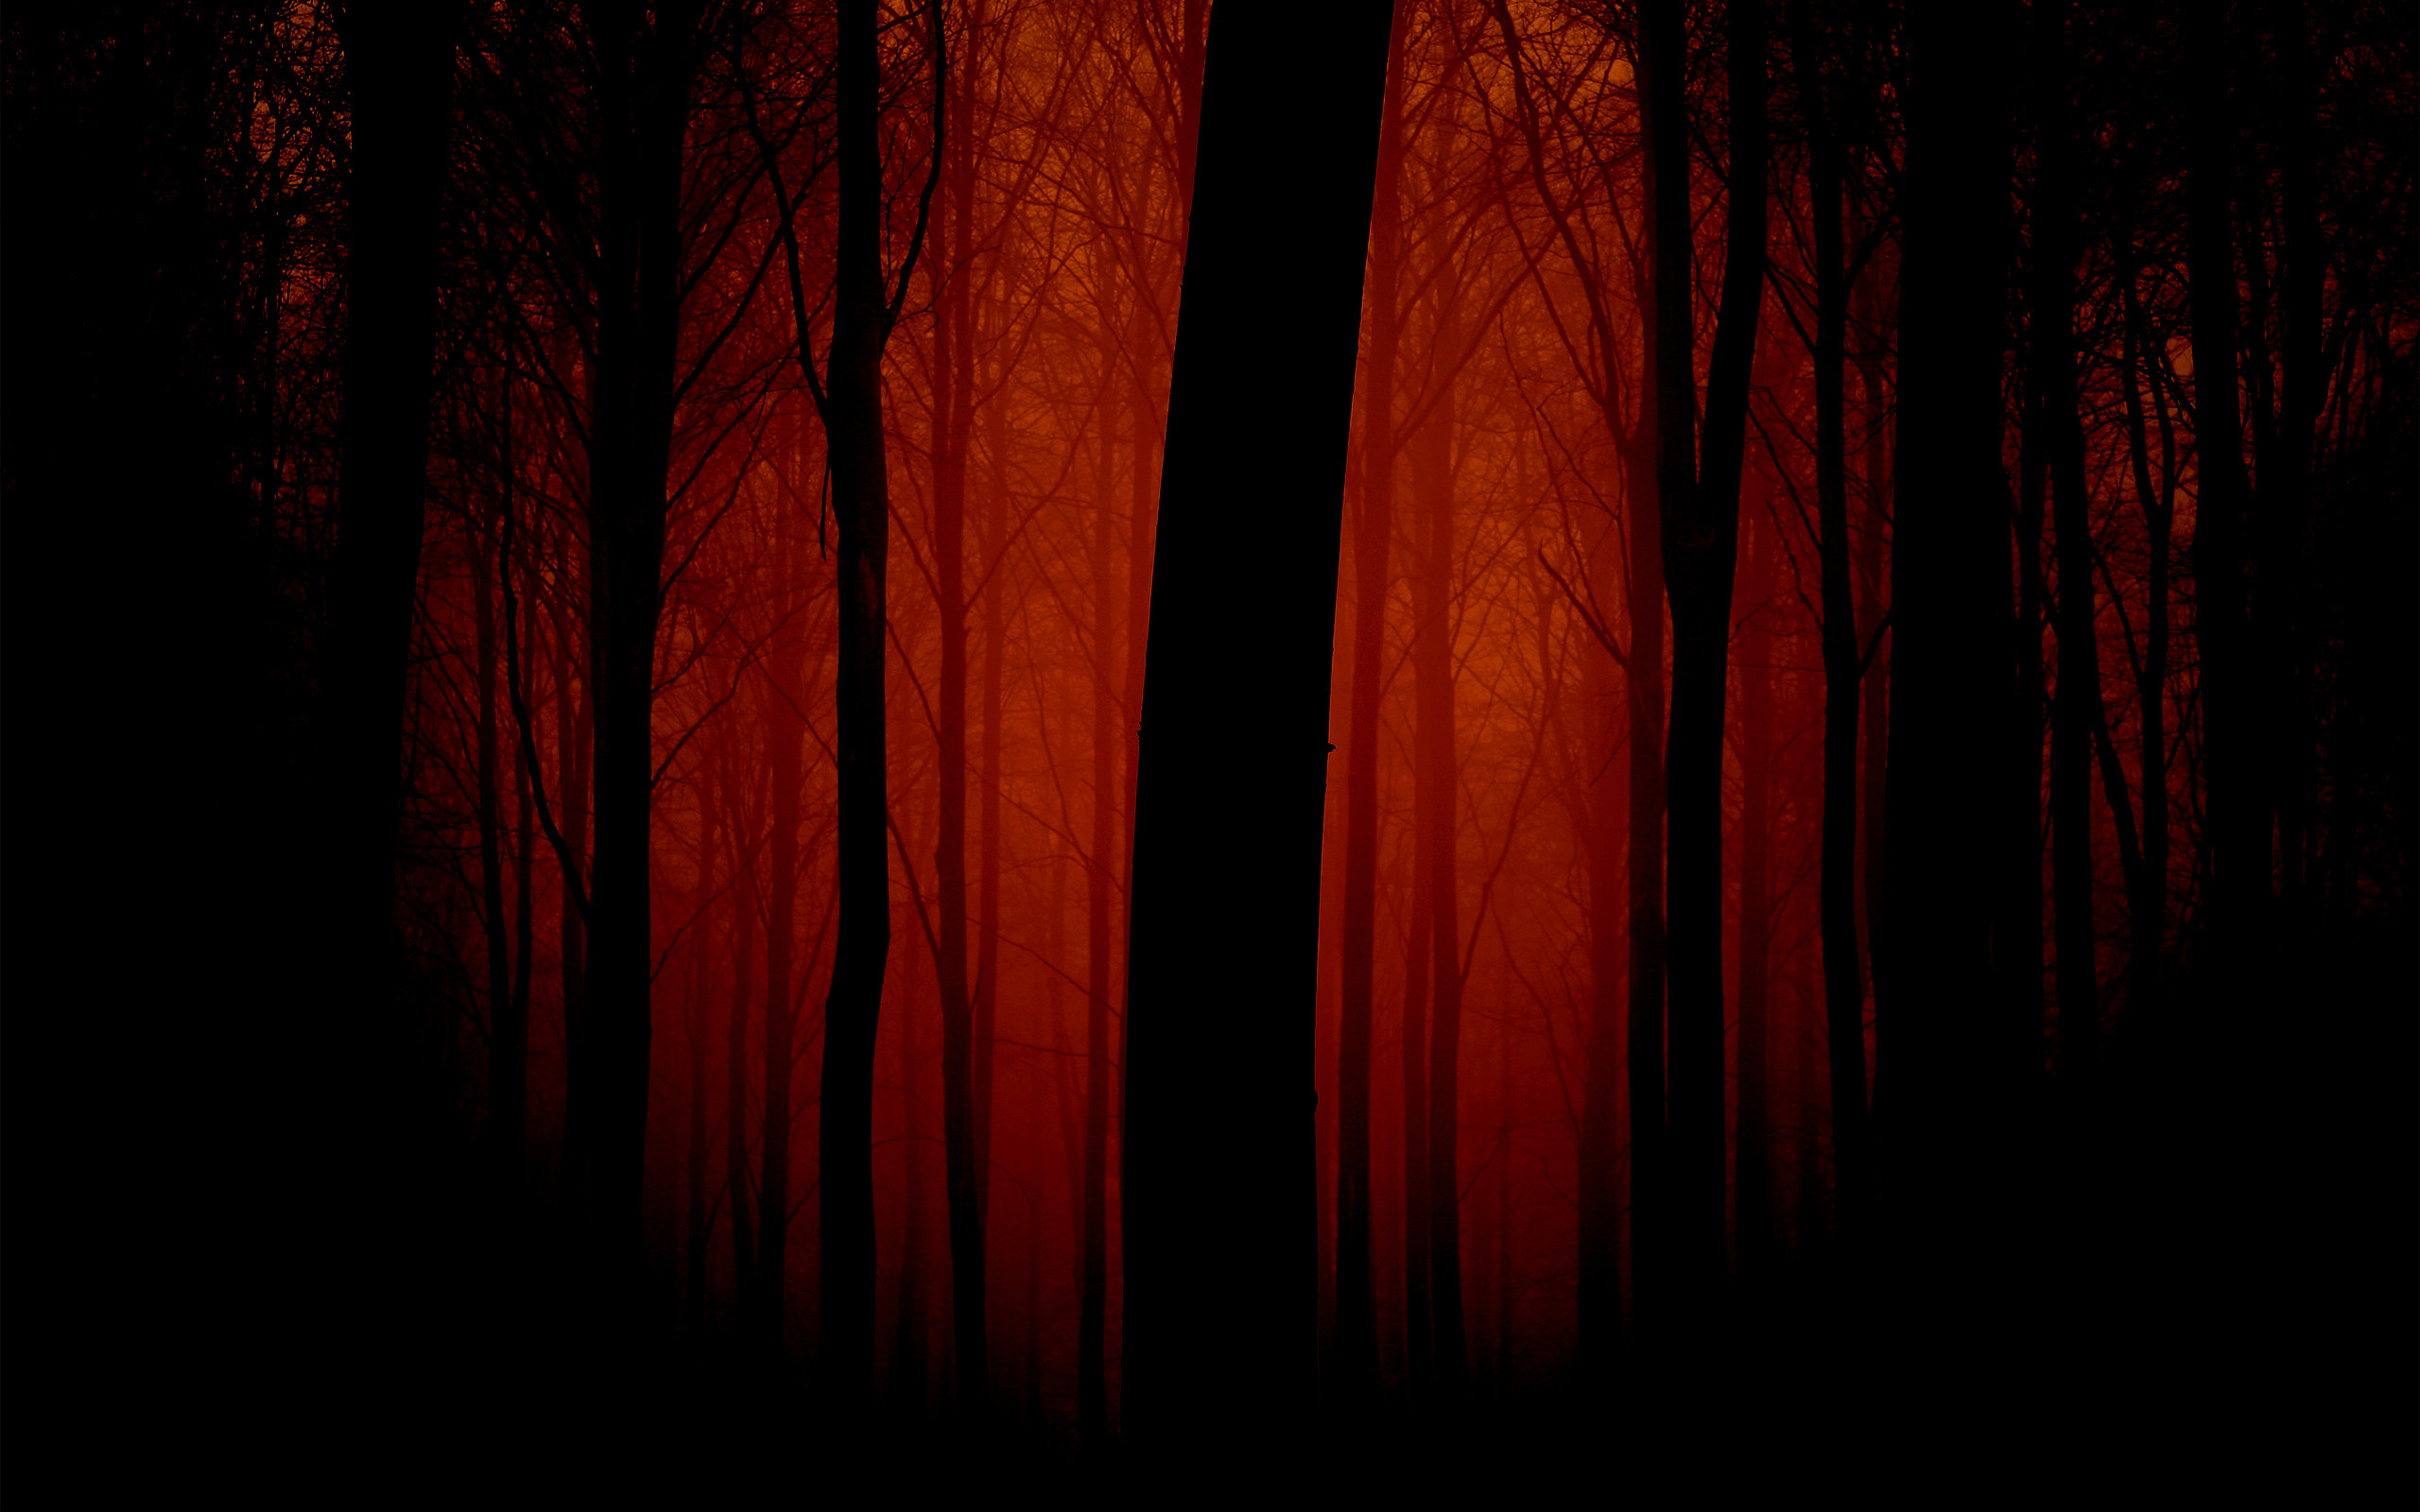 Autumn Forest Wallpaper Autumn Nature Wallpapers in jpg format for